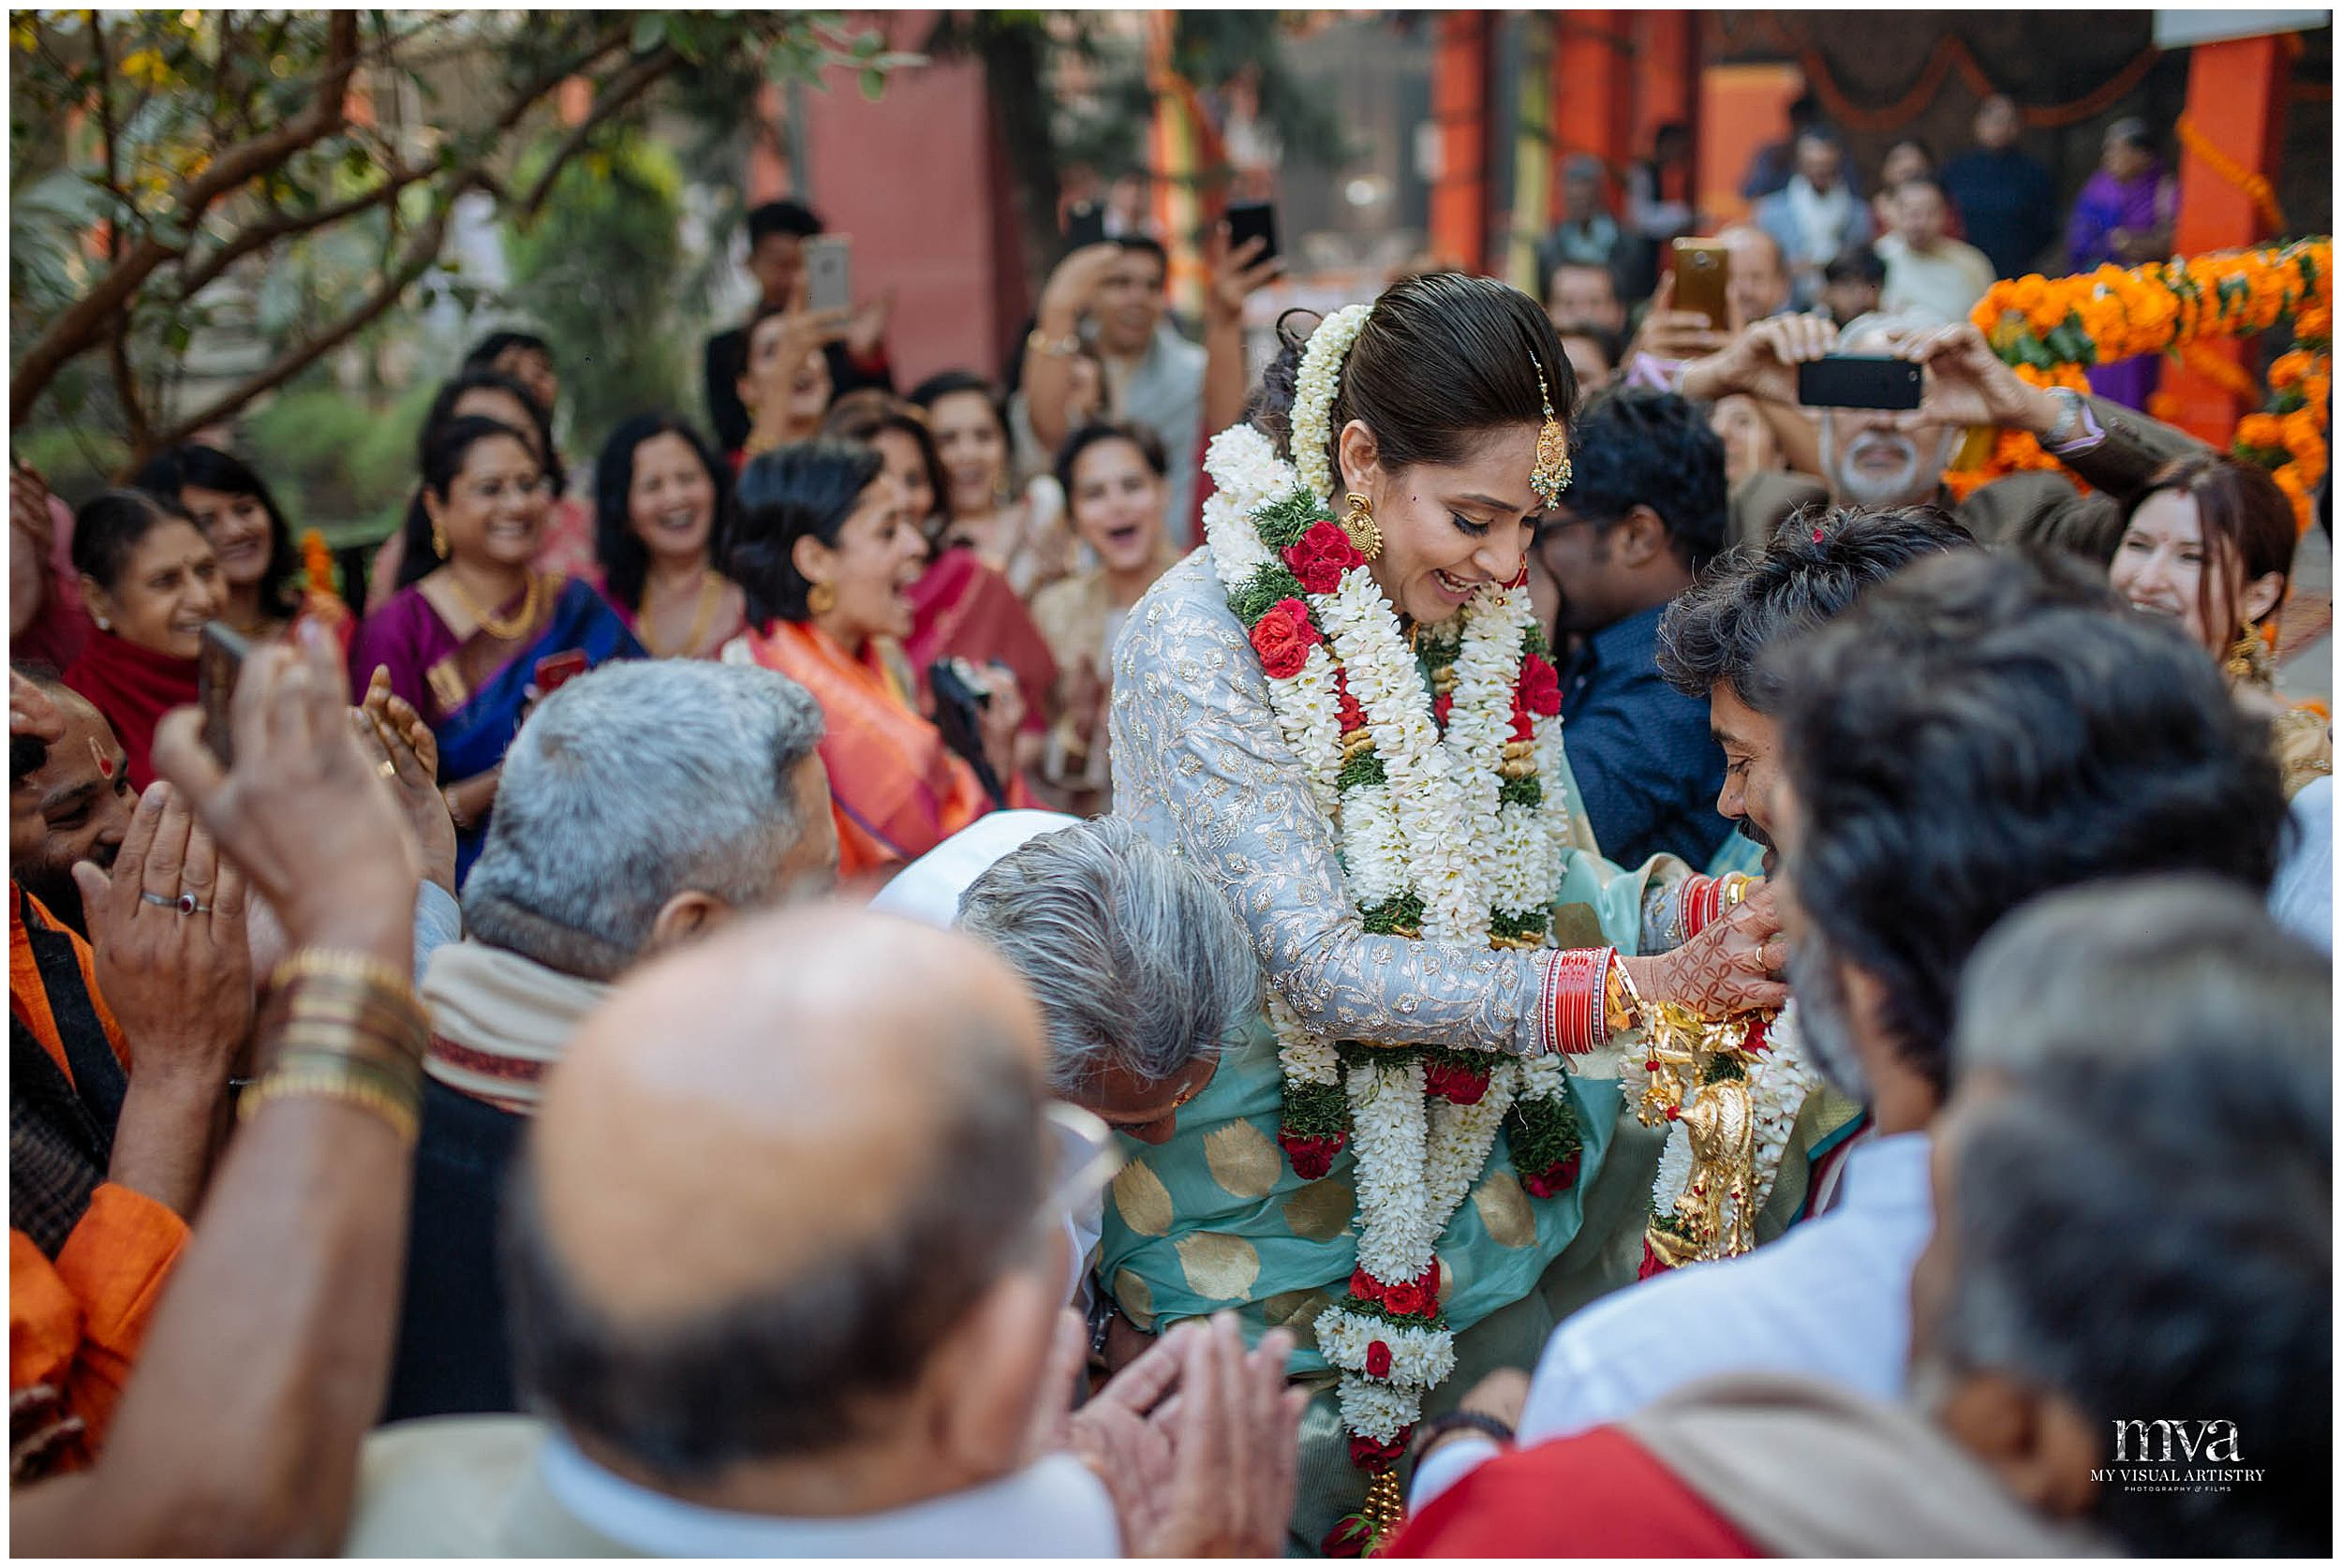 SAHIBA_KARTHIK_MYVISUALARTISTRY_WEDDING_PHOTOGRAPHY_MVA_KERALA_GURGAON_0037.jpg